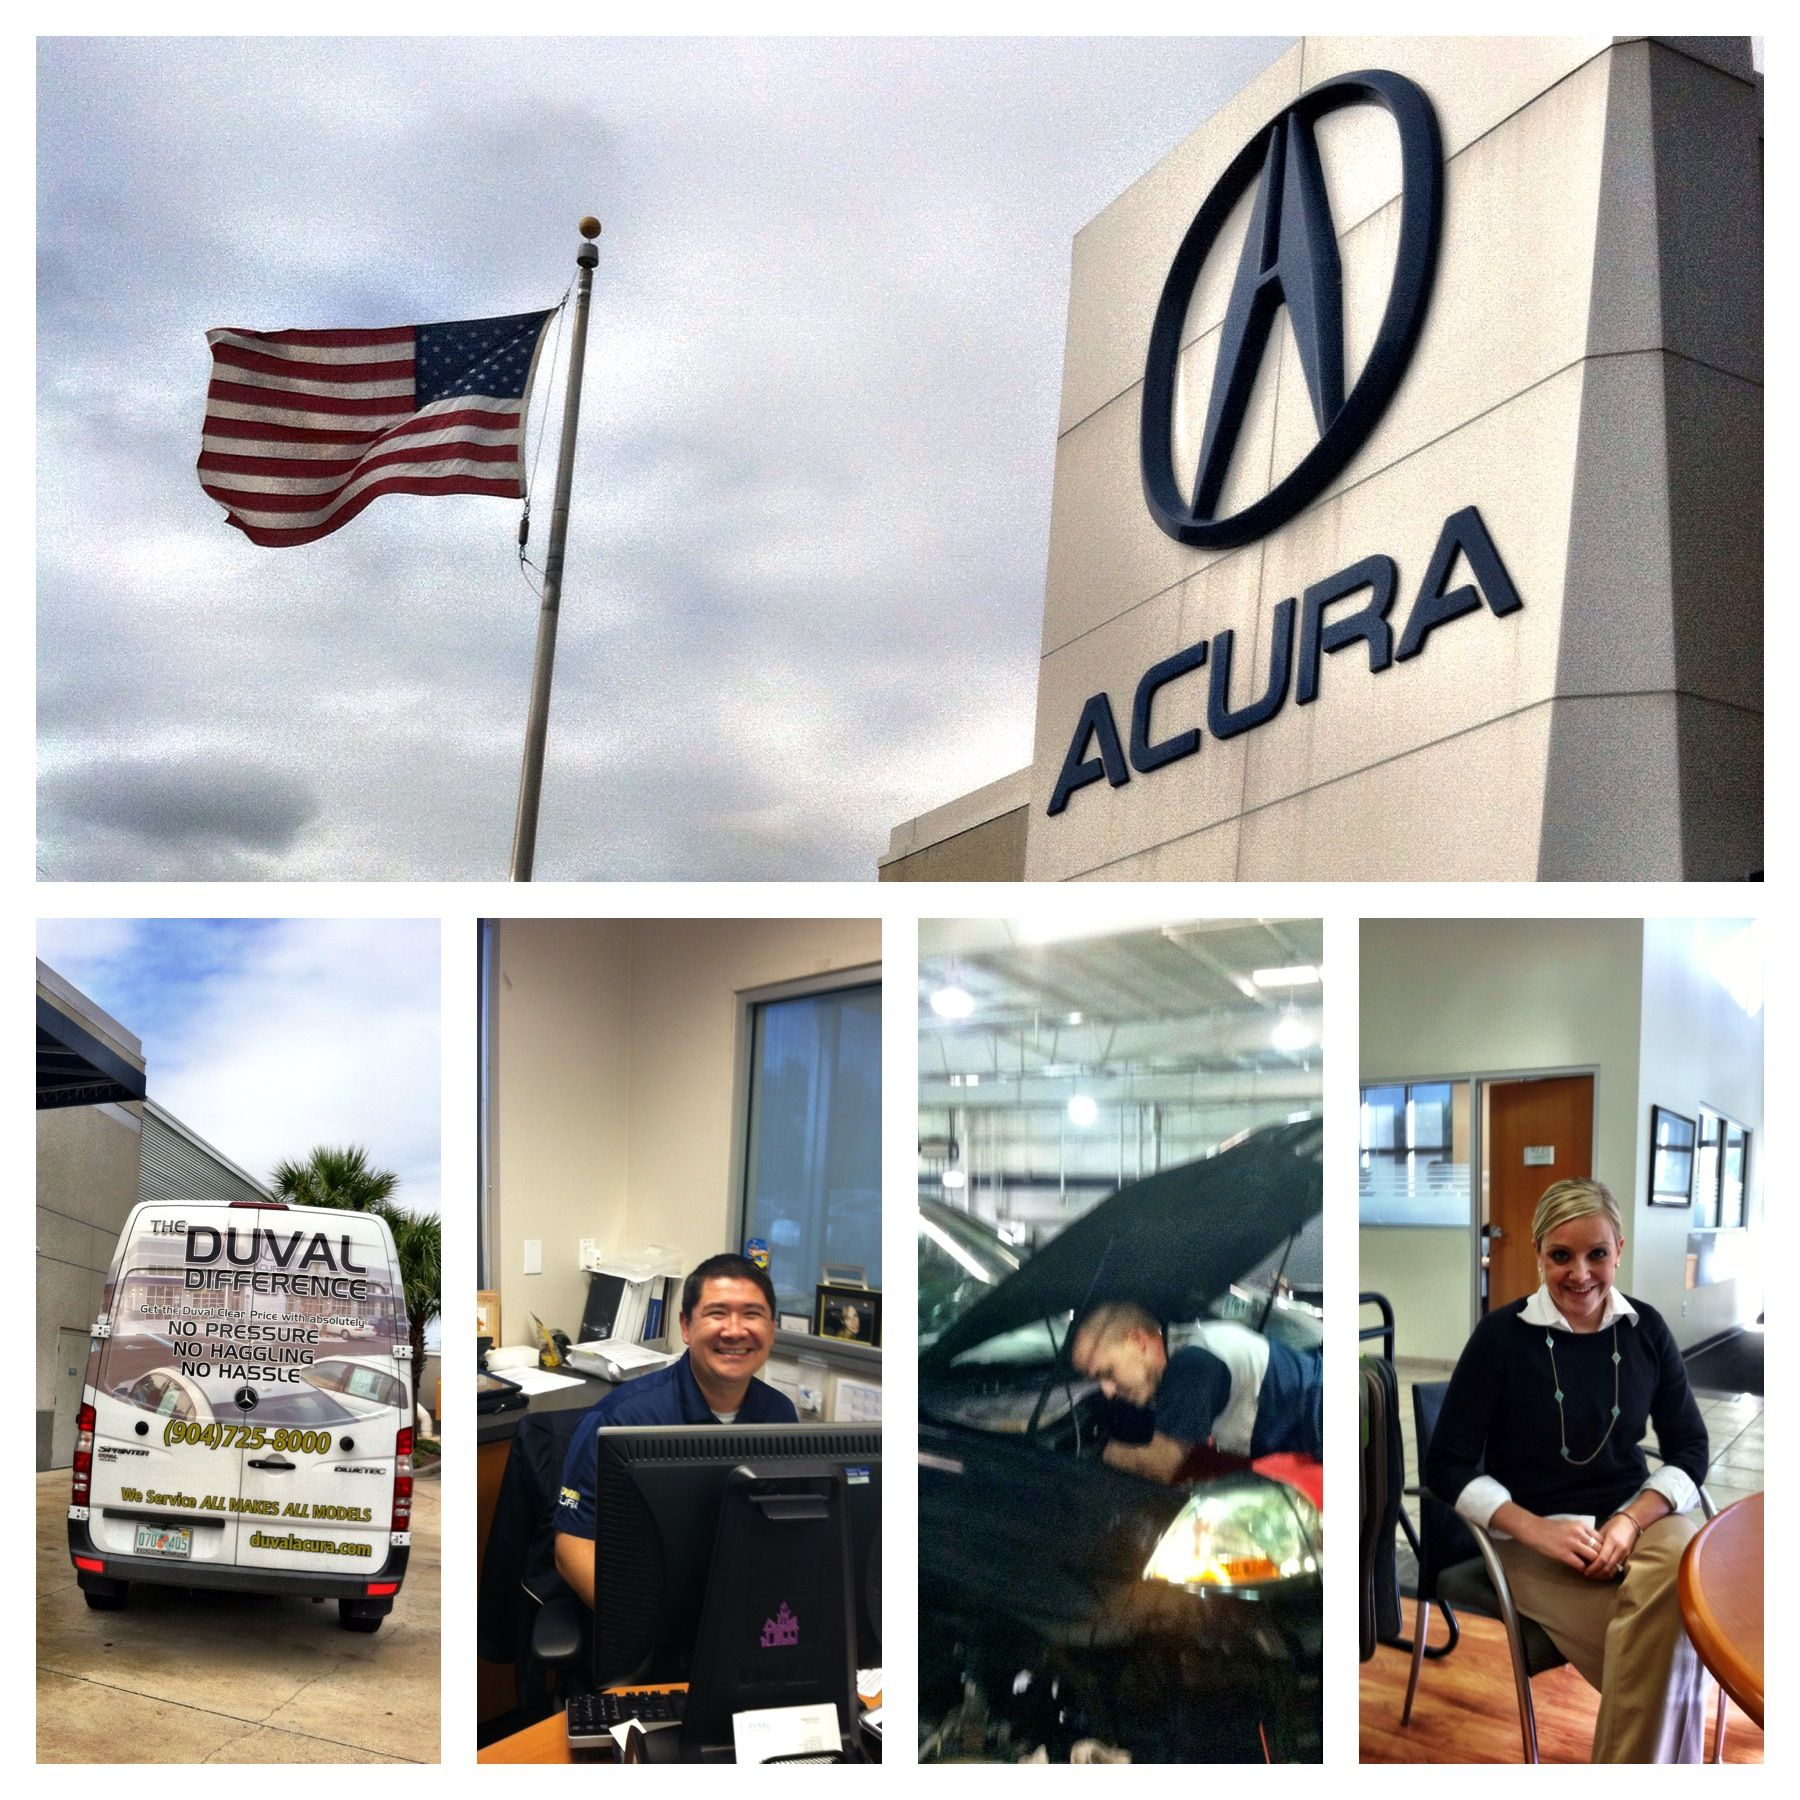 Duval Acura On Atlantic Blvd, Jacksonville FL. Come By To